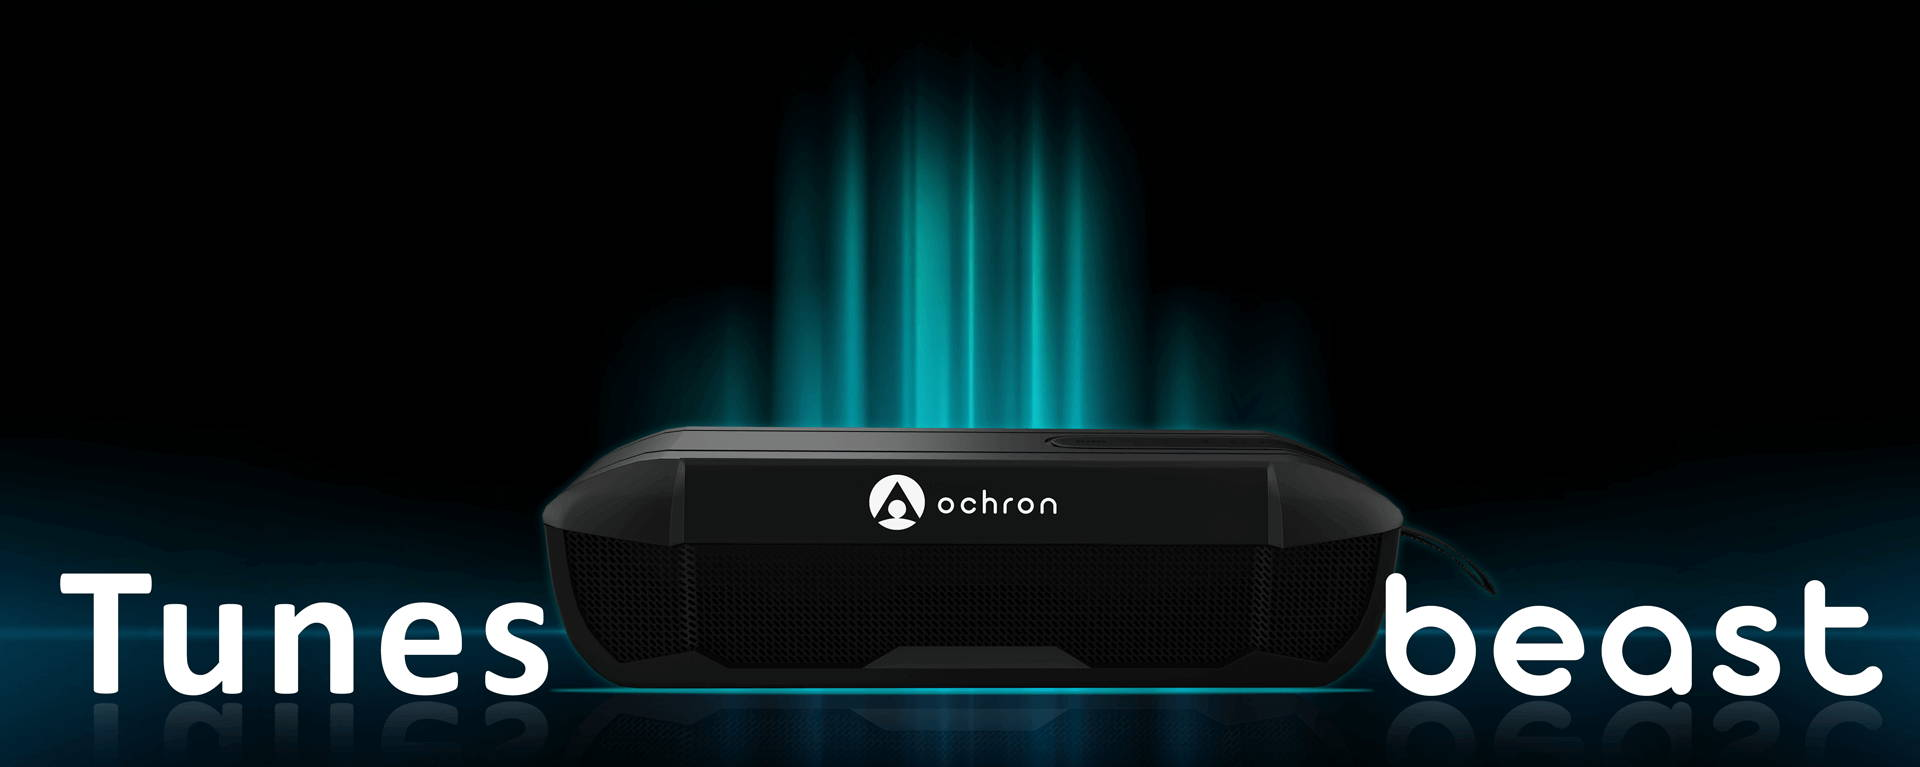 Ochron Tunes Beast True Wireless Bluetooth Stereo Speaker has a tremendous sound output for party lovers. TWS Beast is ideal for House Parties, Campings, Bonfires to create a great musical ambiance.